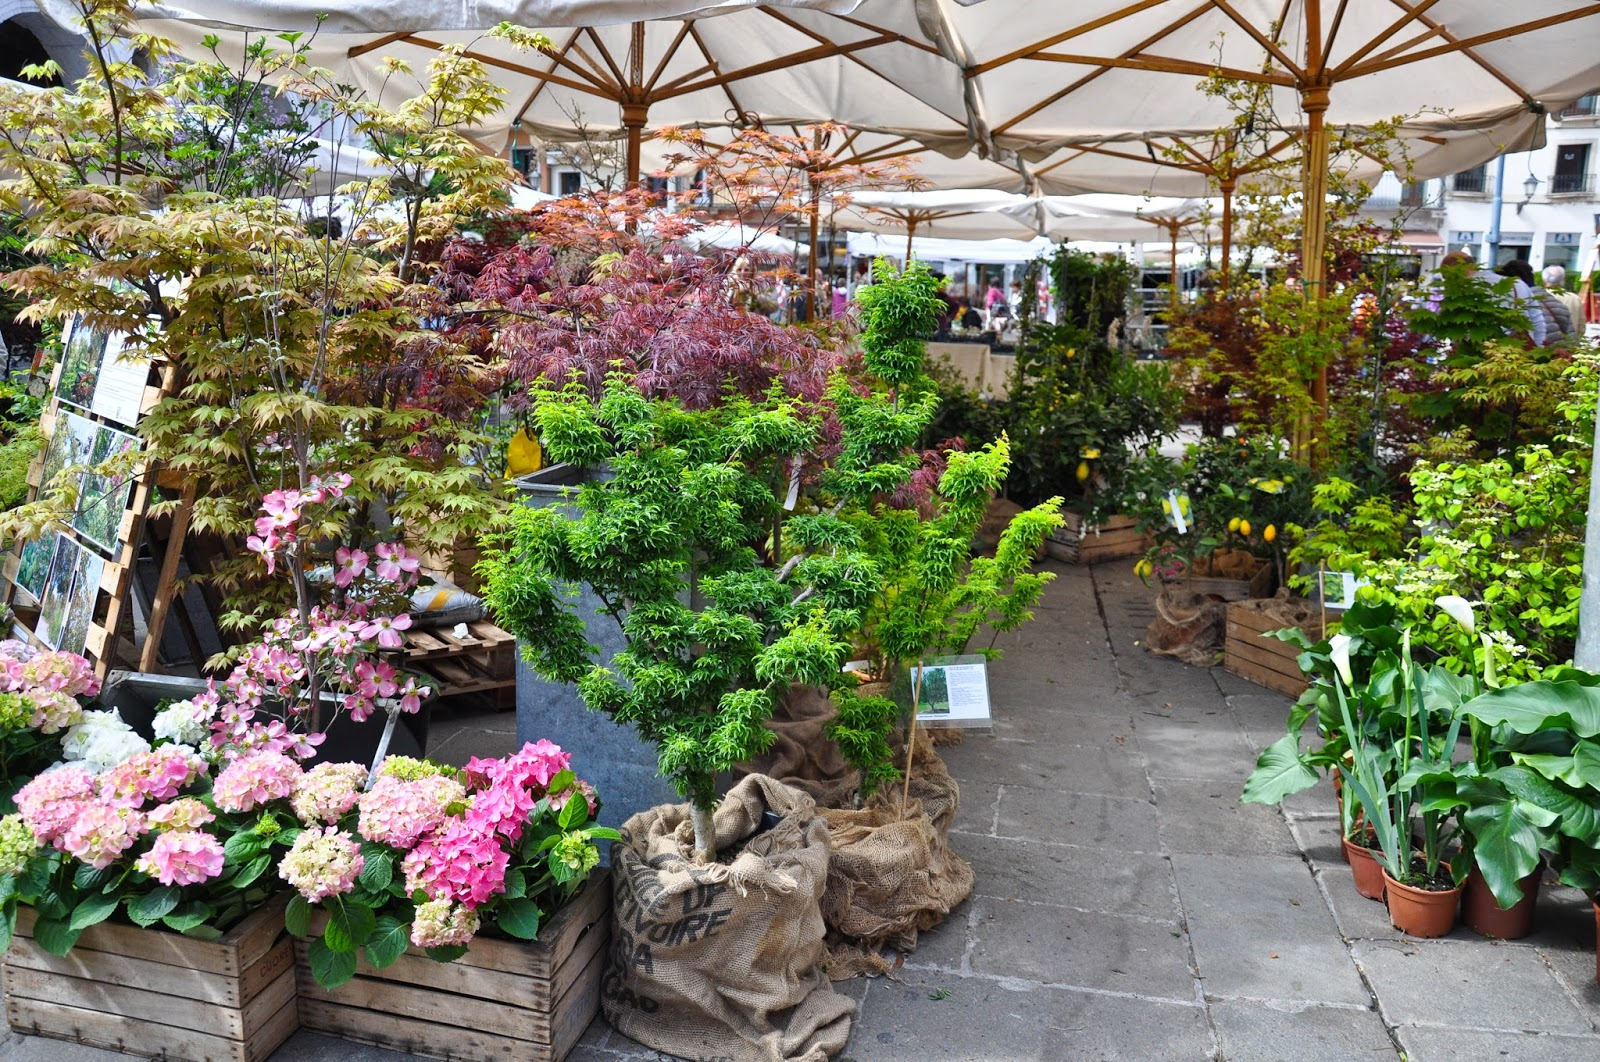 A mini garden centre, 7th Edition of 'Fiori, colori, e...' - Floriculture market show, Vicenza, Italy